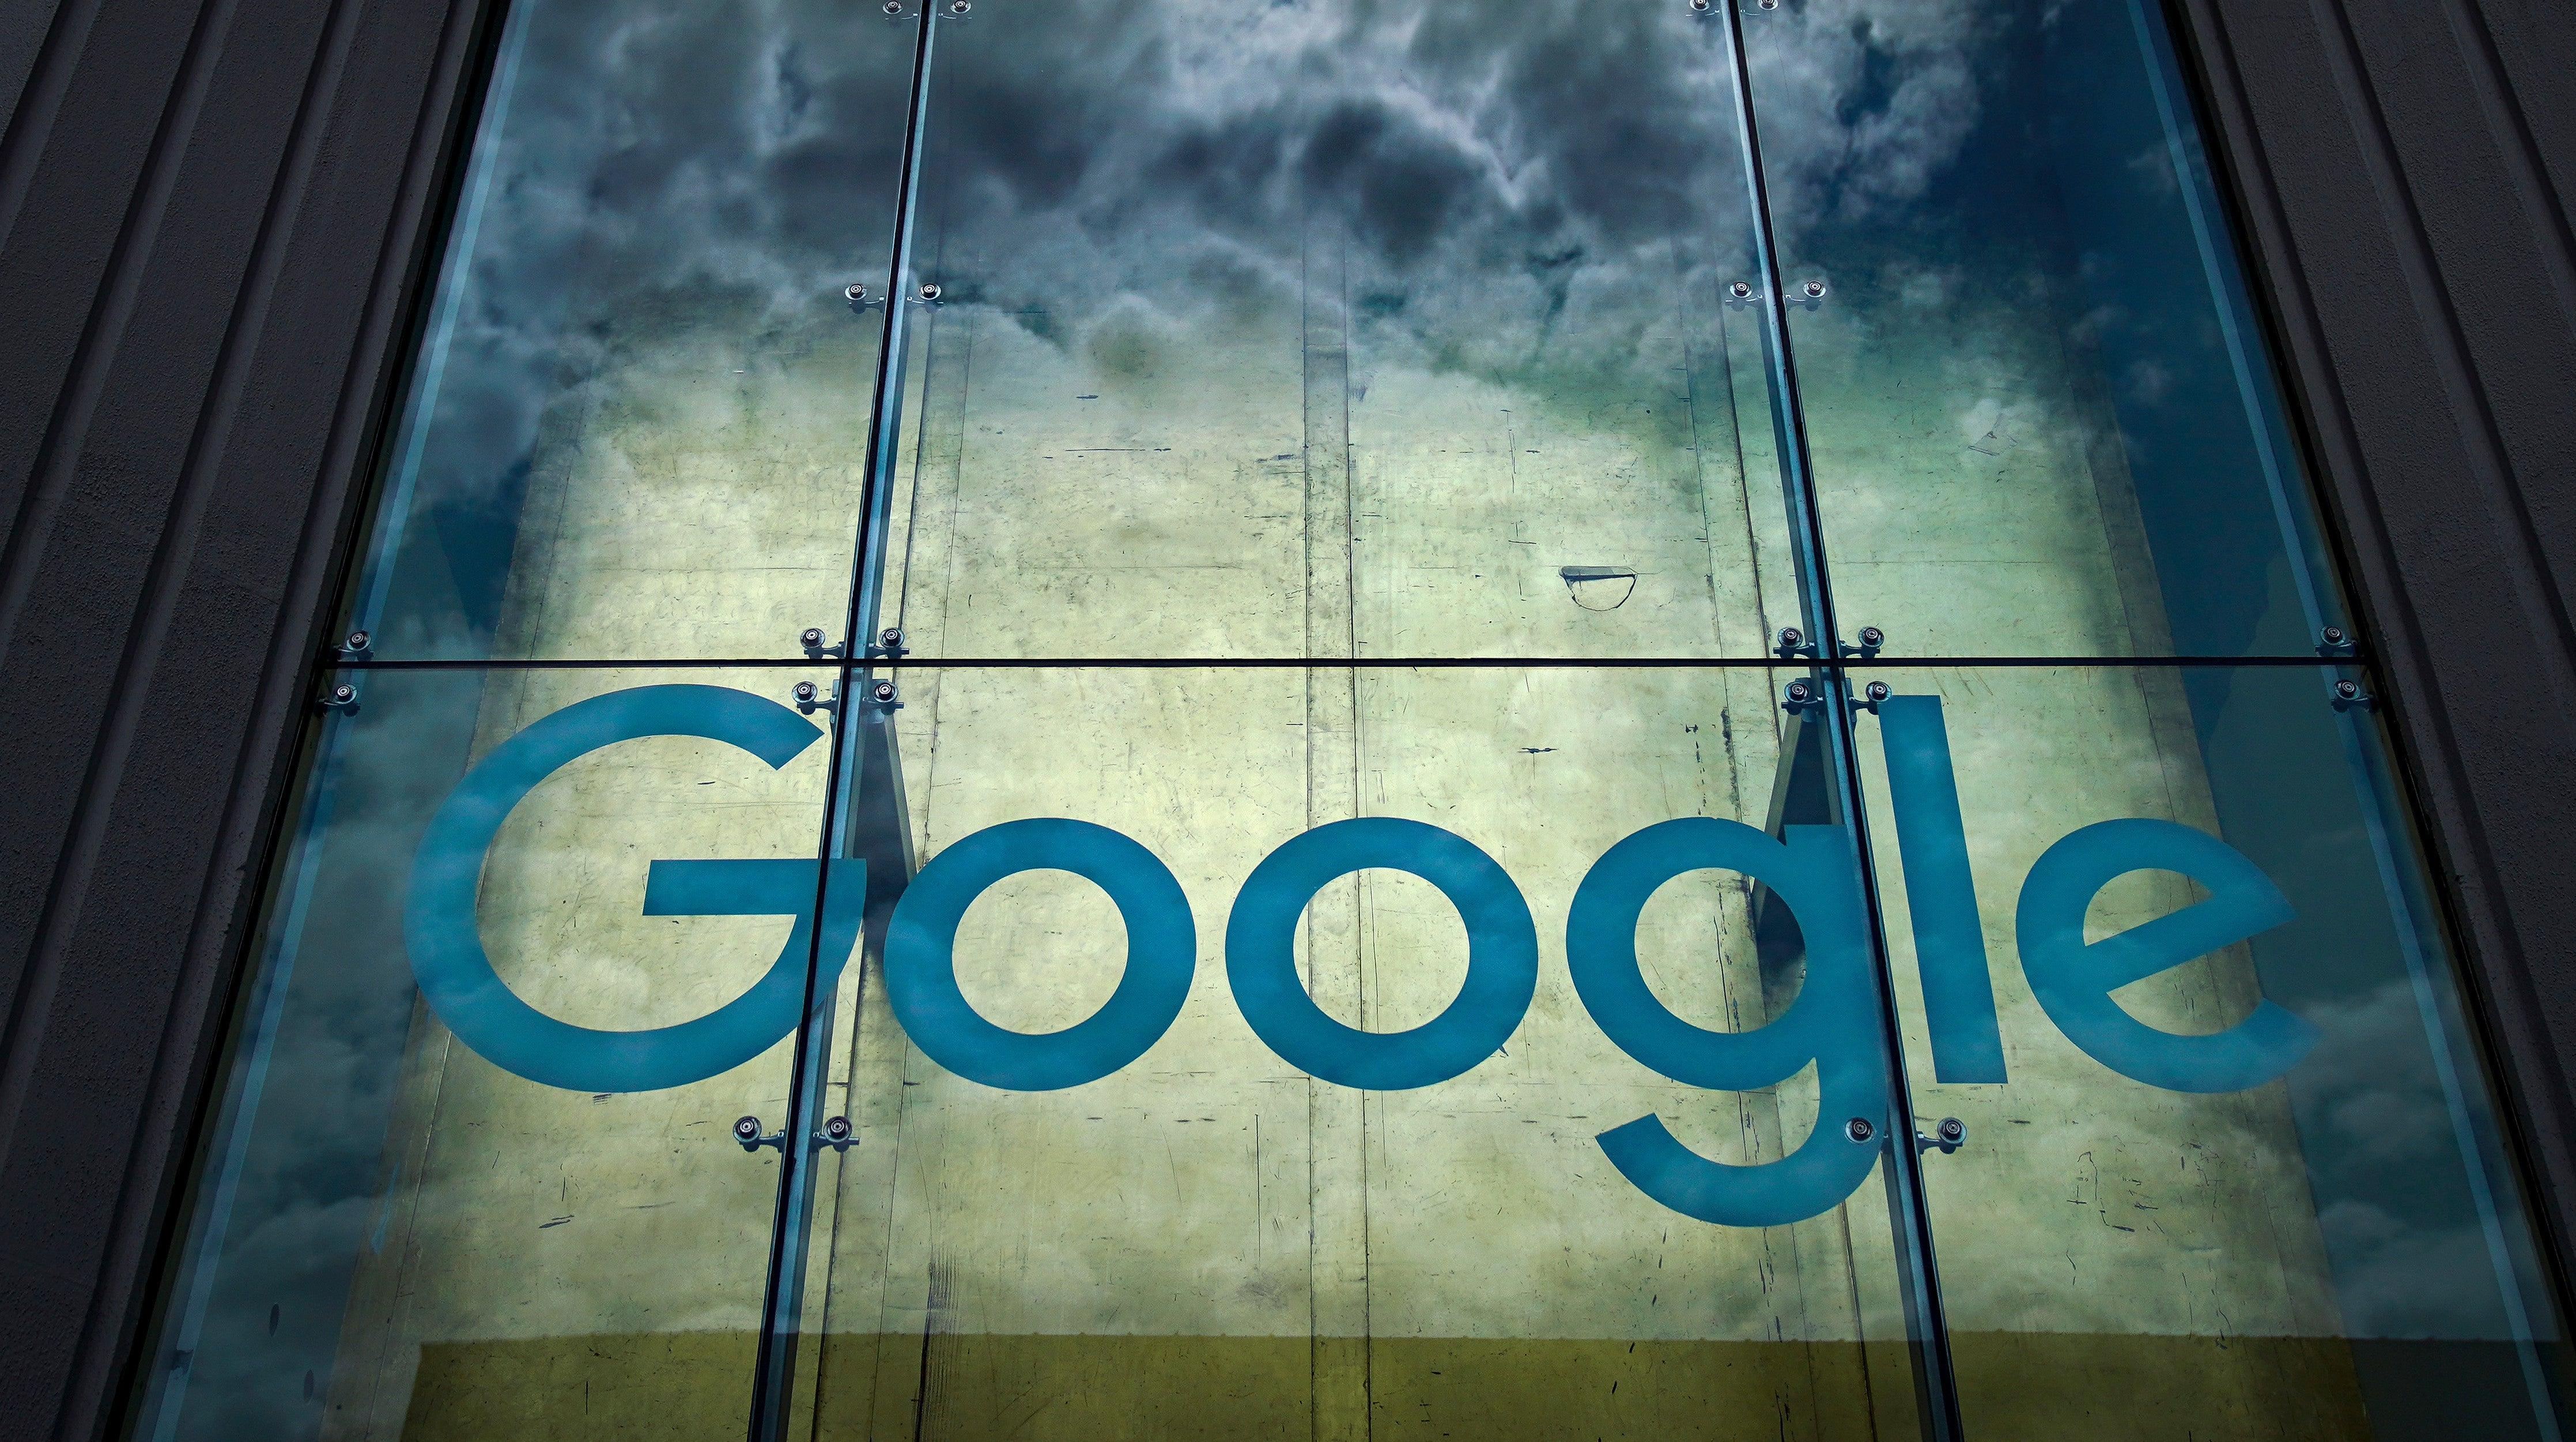 Google And Private Research University Sued For Sharing Medical Data Without Patient Consent